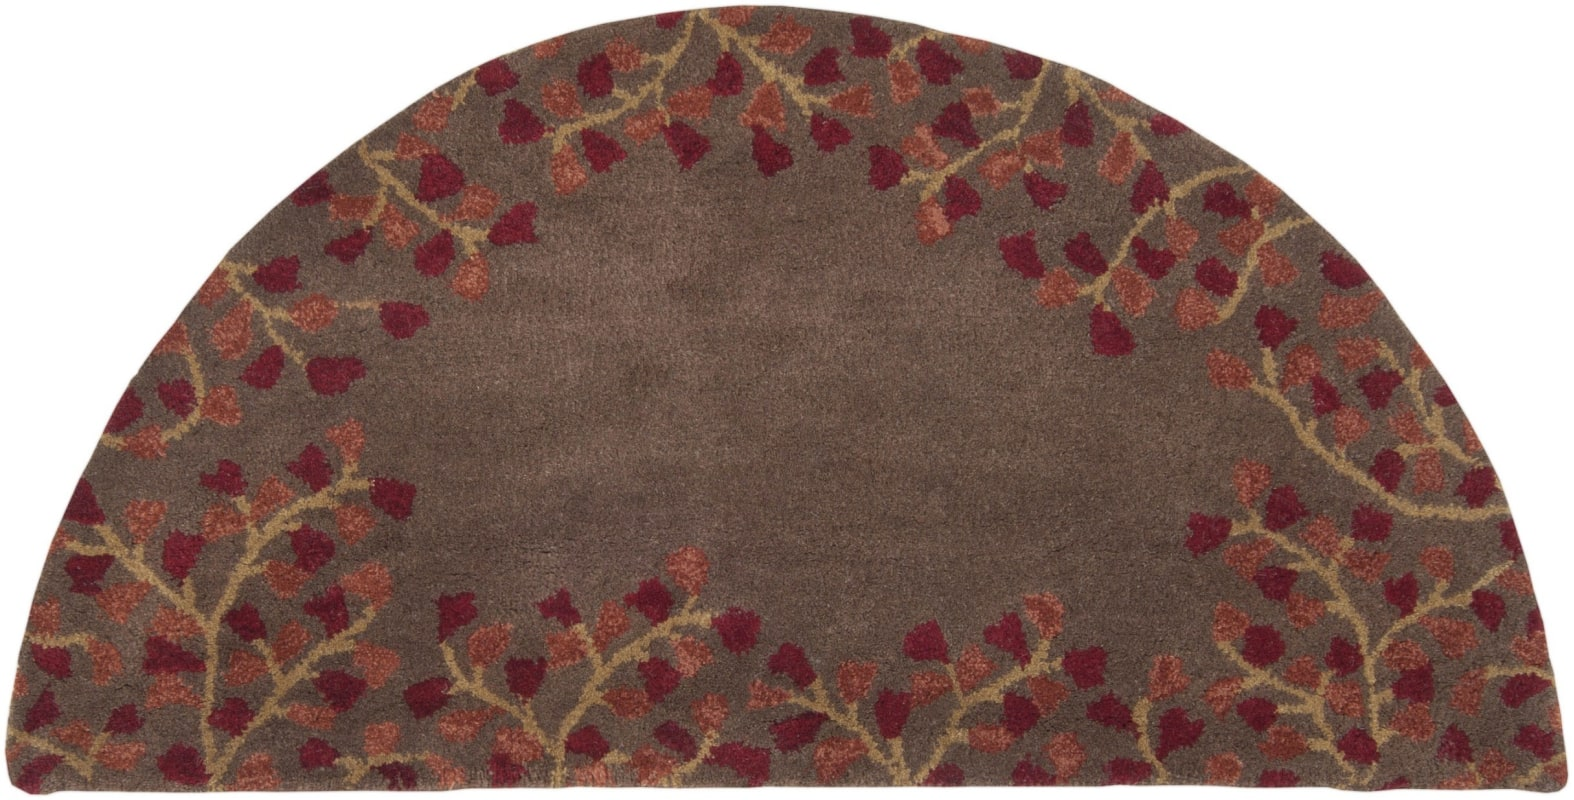 Surya ATH-5003 Athena Hand Tufted Wool Rug Red 2 x 3 Home Decor Rugs